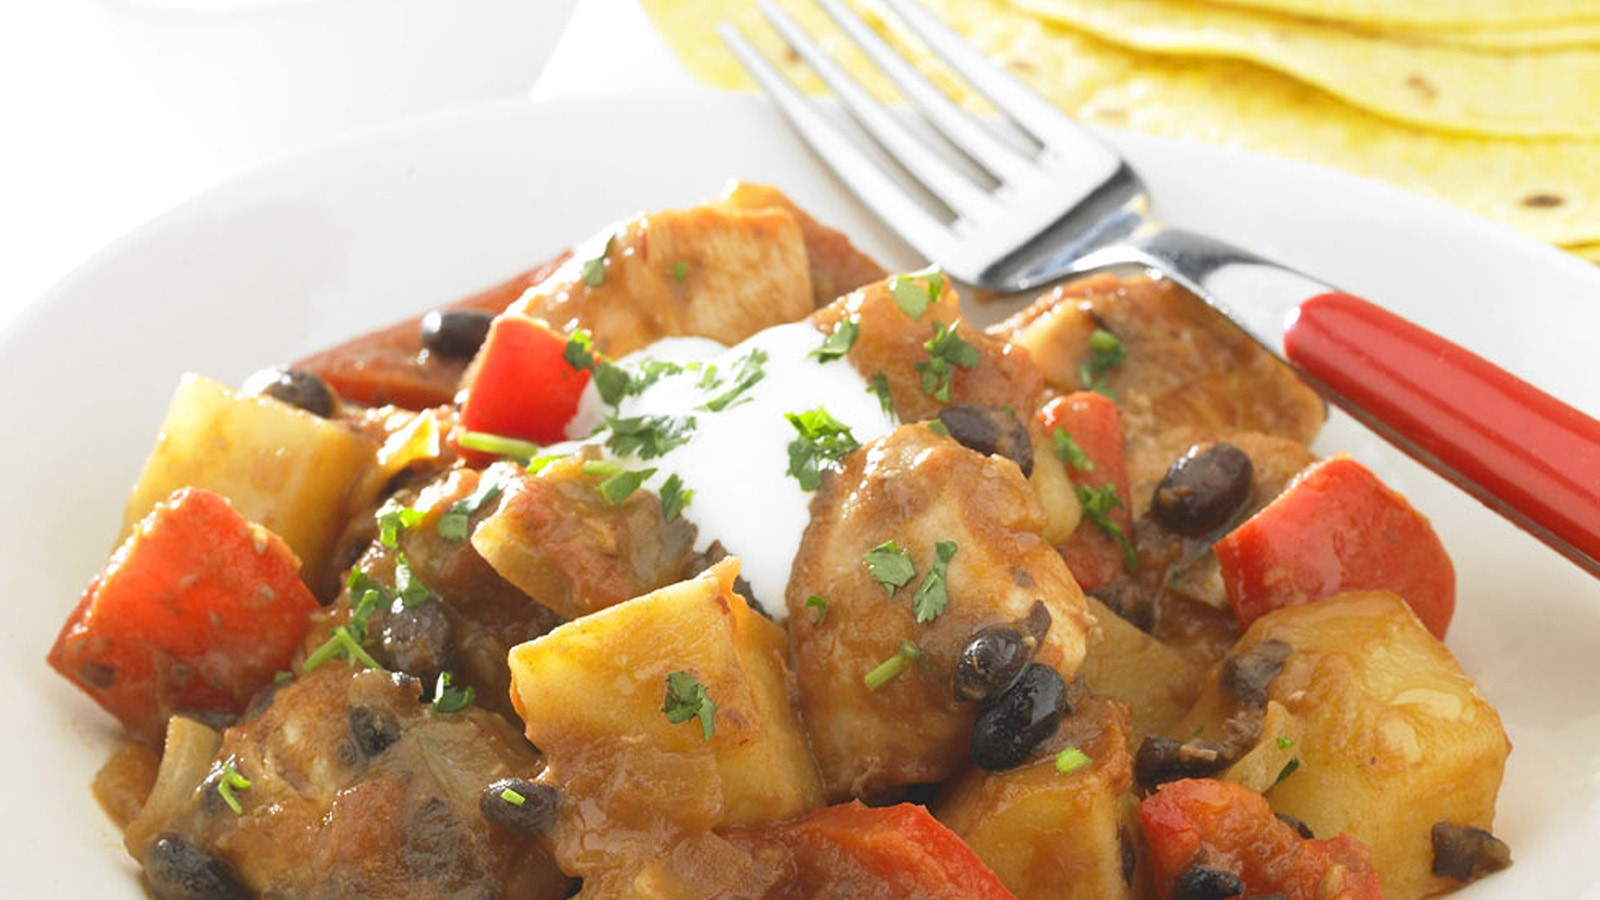 Spicy Potatoes with Chicken and Tomato